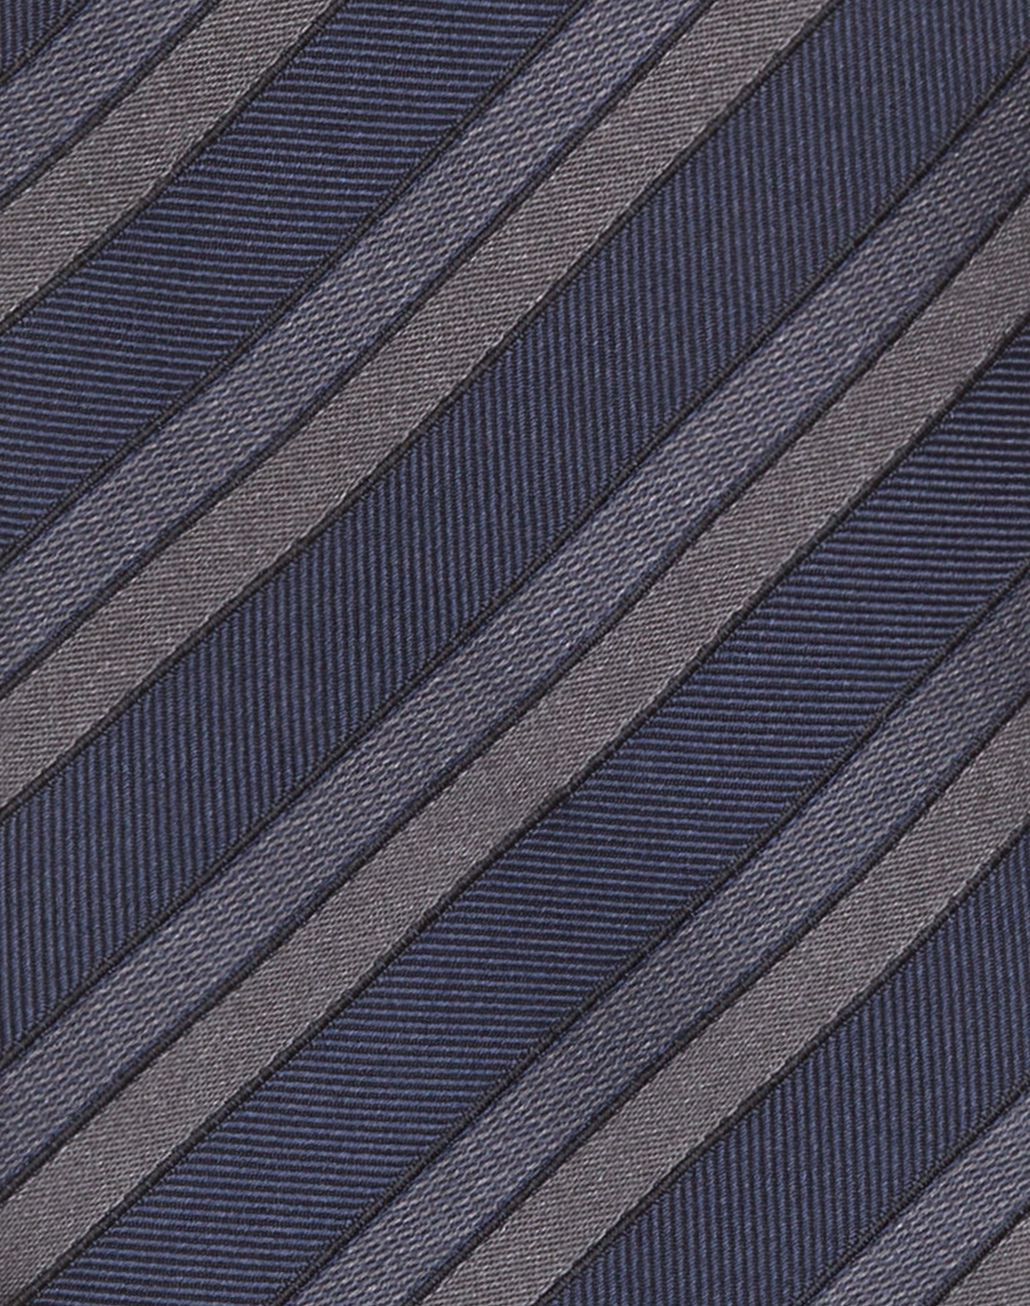 BRIONI Grey and Blue Navy Regimental Tie Tie & Pocket Square U d